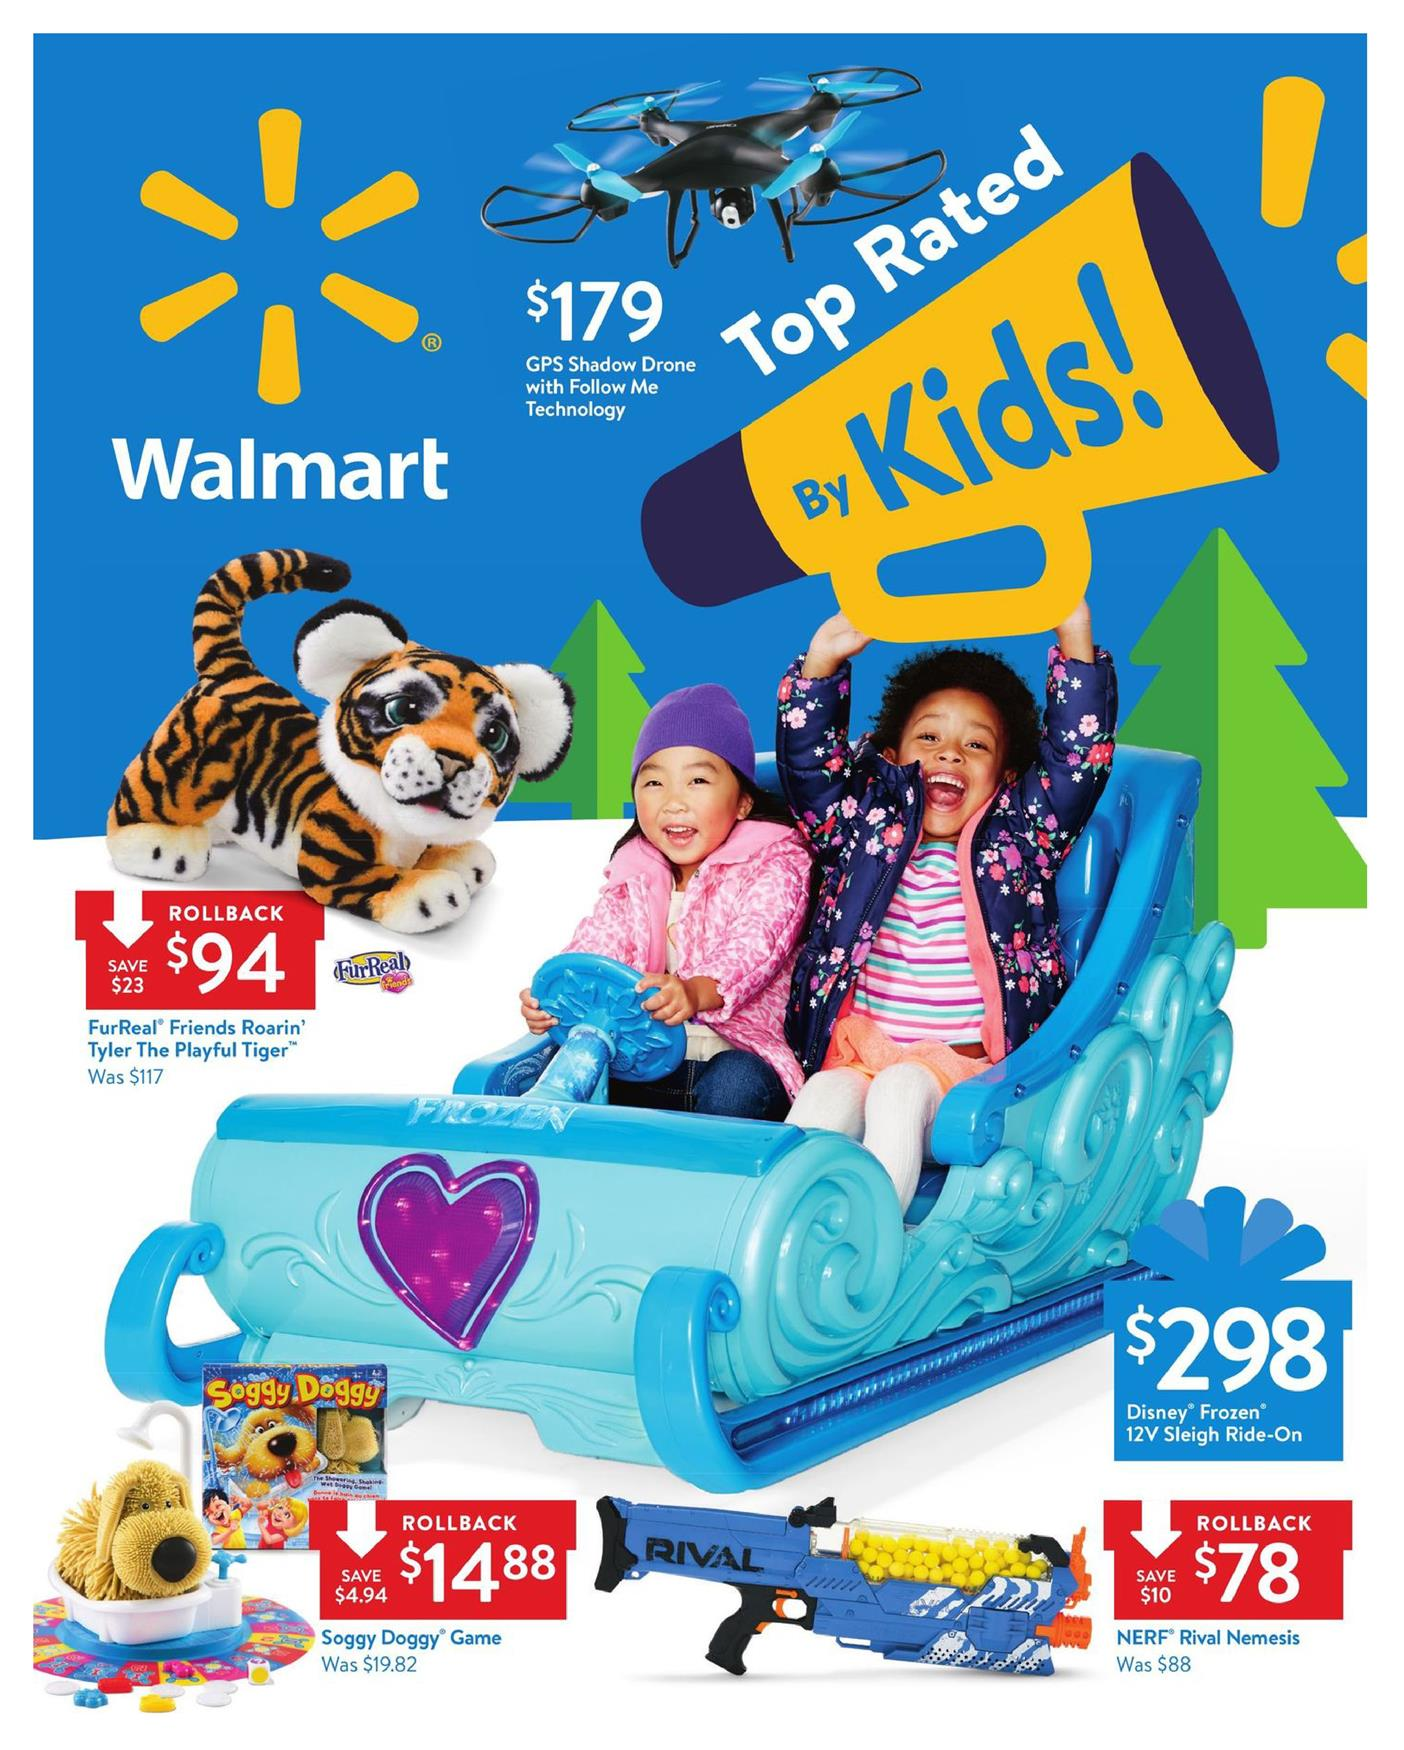 Big W Toys Catalogue Walmart Ad Toy Sale Nov 3 Dec 24 2017